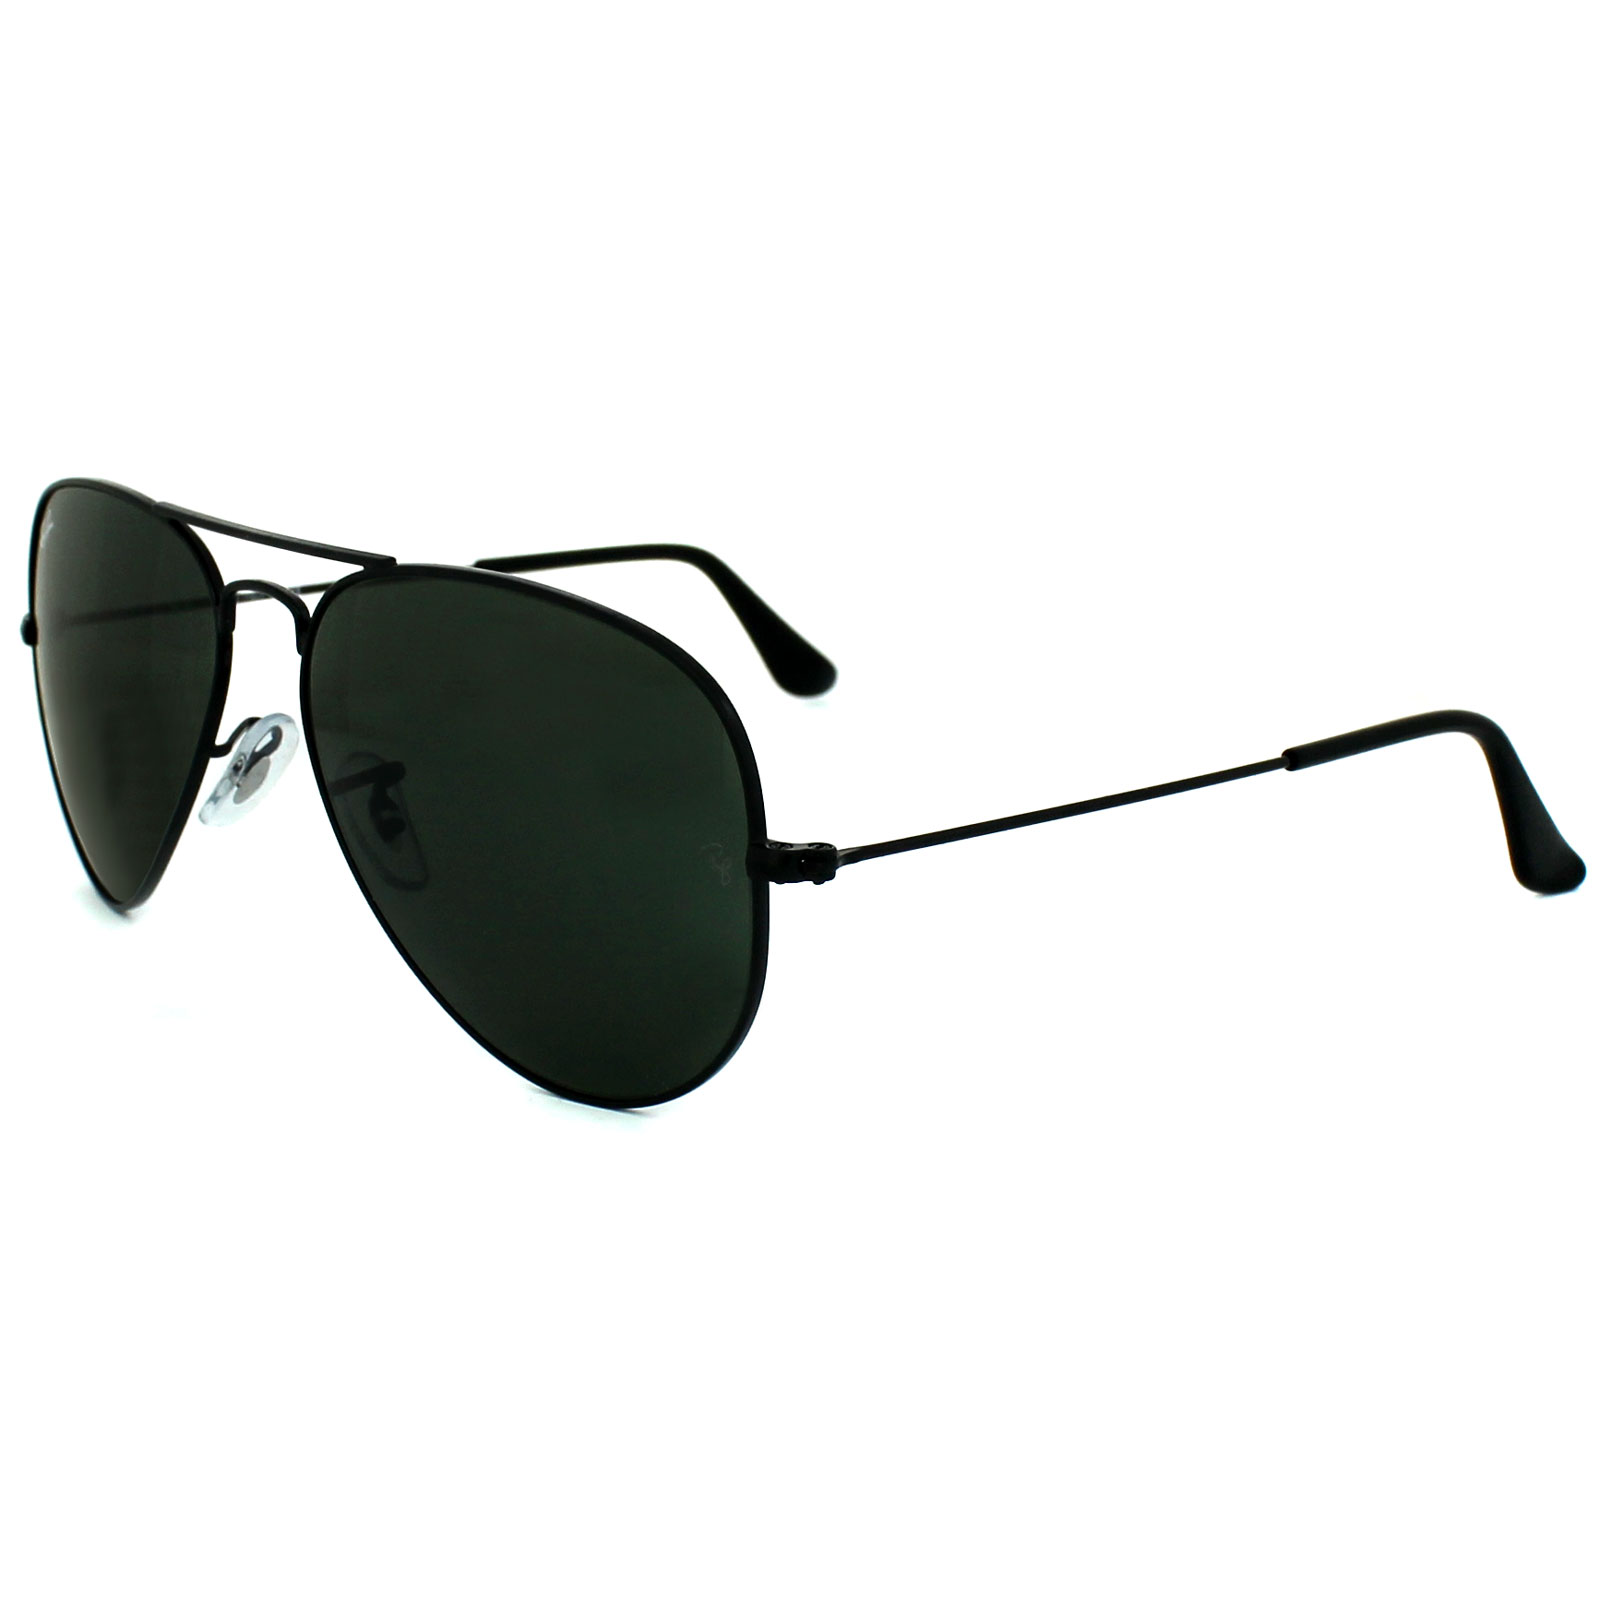 Cheap Ray-Ban Sunglasses Aviator 3025 L2823 Black Green G ...